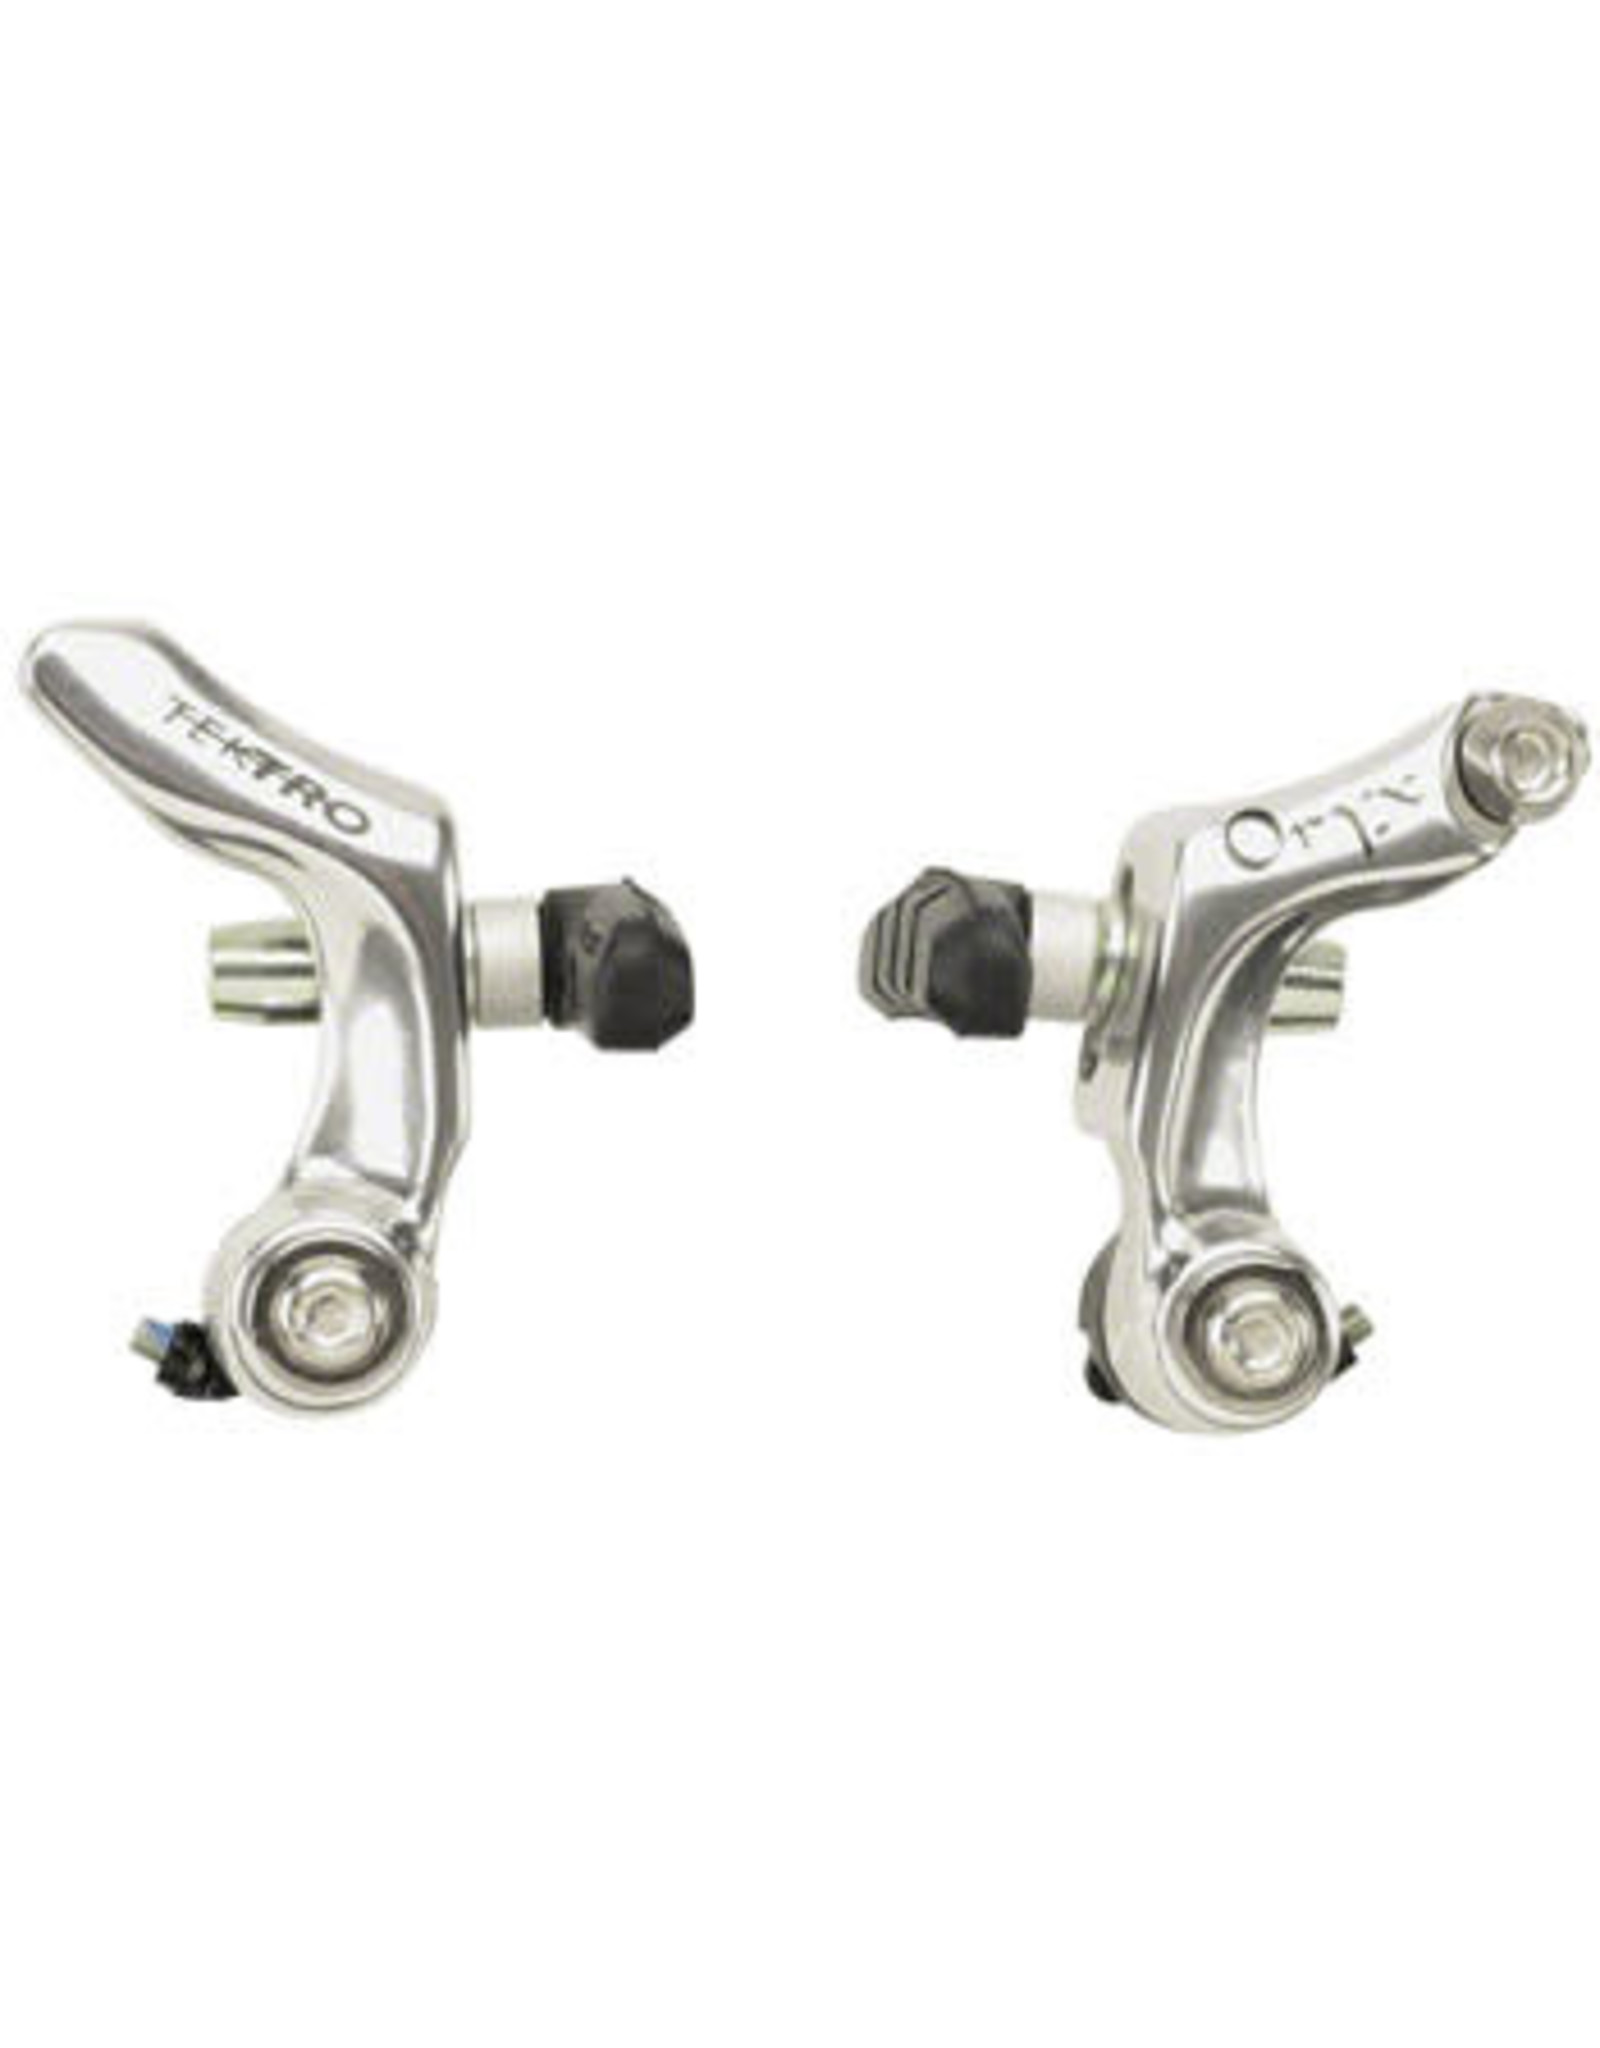 Tektro Tektro Oryx Front or Rear Cantilever Brake with Standard Pad, Silver